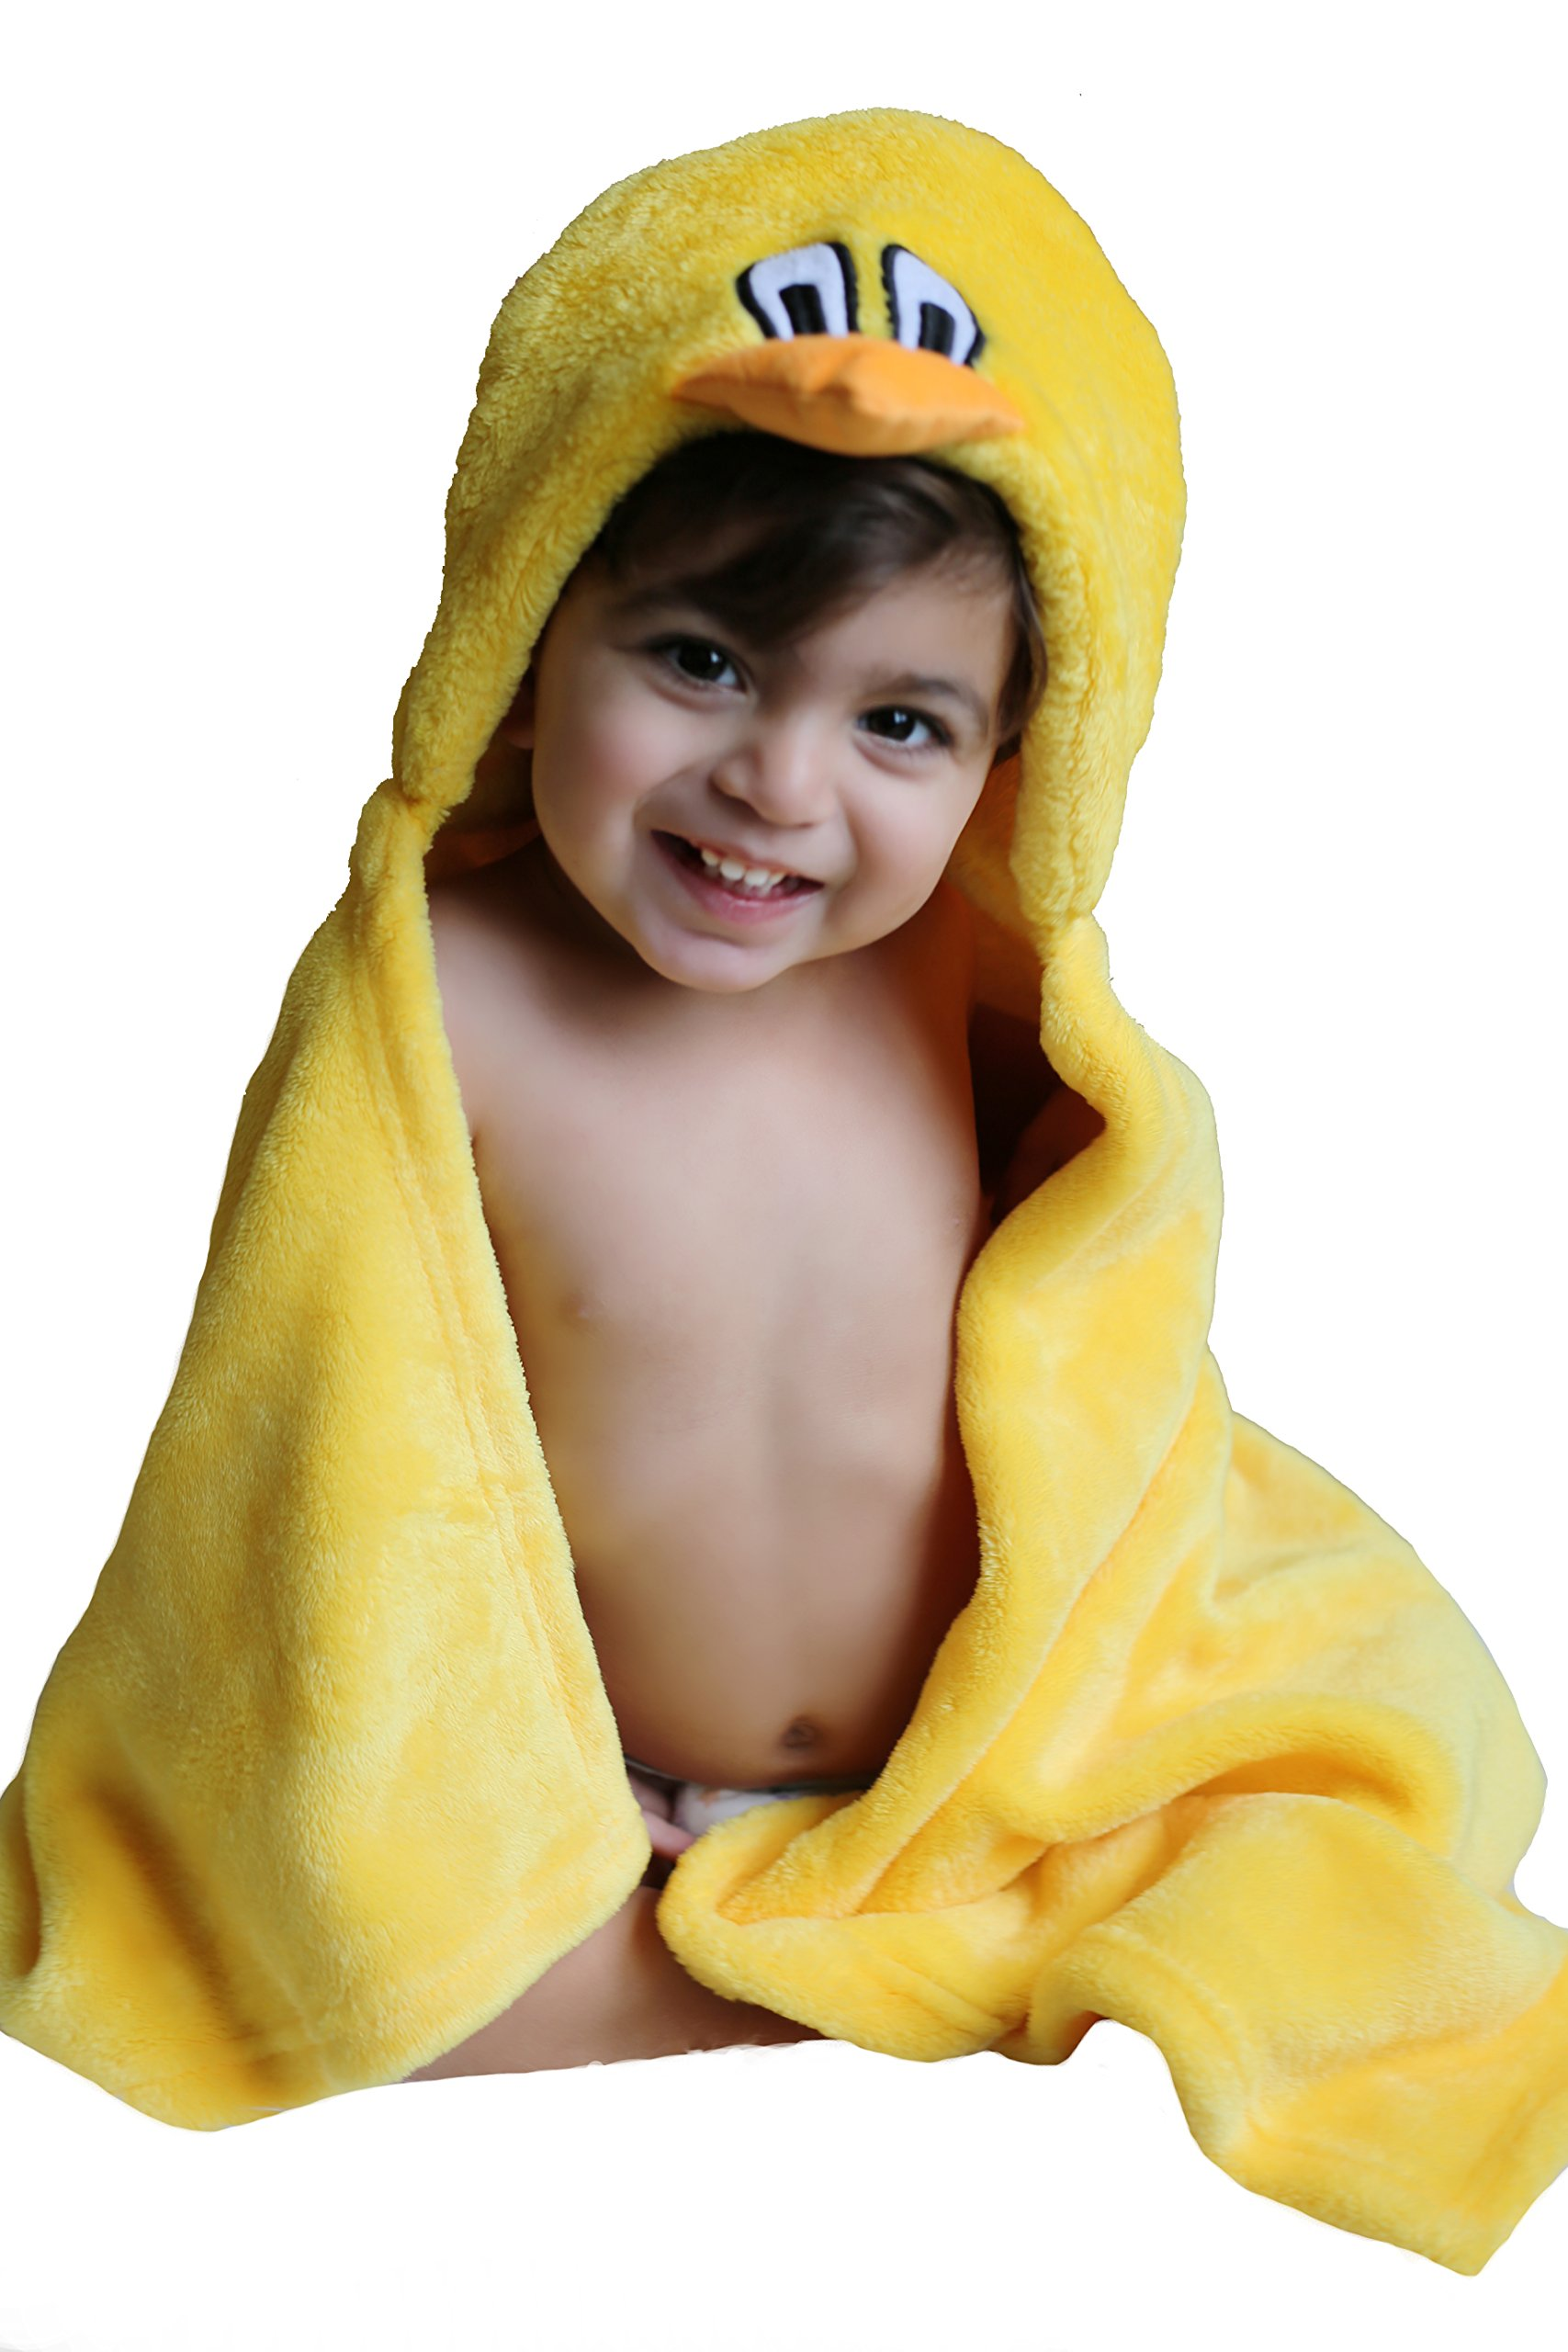 Premium Baby Hooded Blanket Gift Set in Yellow. Cute Duck is the Hood, Super Soft and Gentle for Baby Skin. Generous 30 Inches Long by 36 Inches Wide. Washcloth and Baby Bib In Yellow Included..